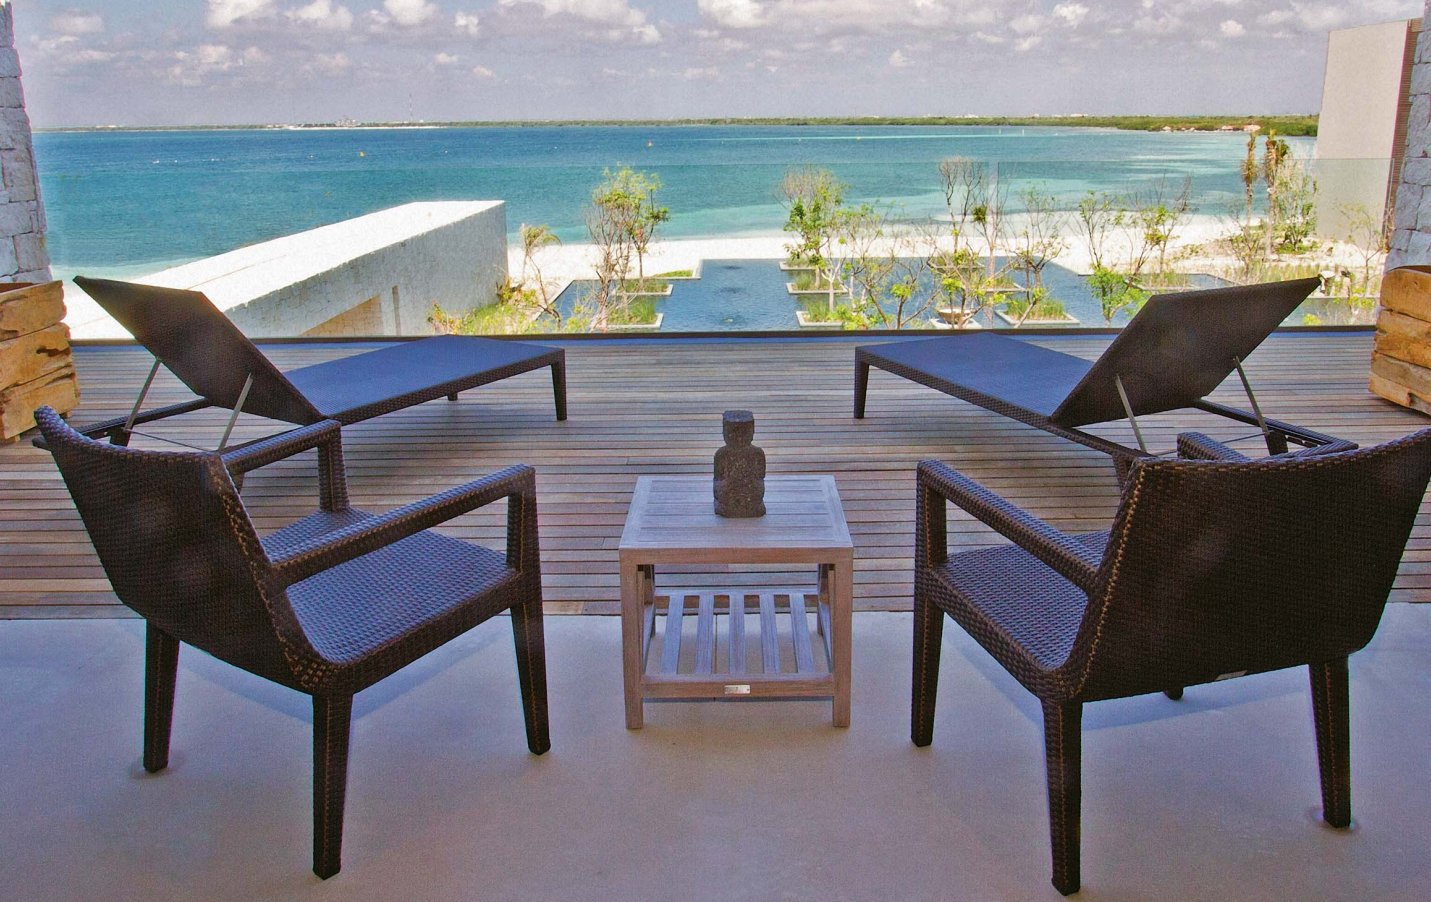 janus-cie-miami-outdoor-patio-furniture-13